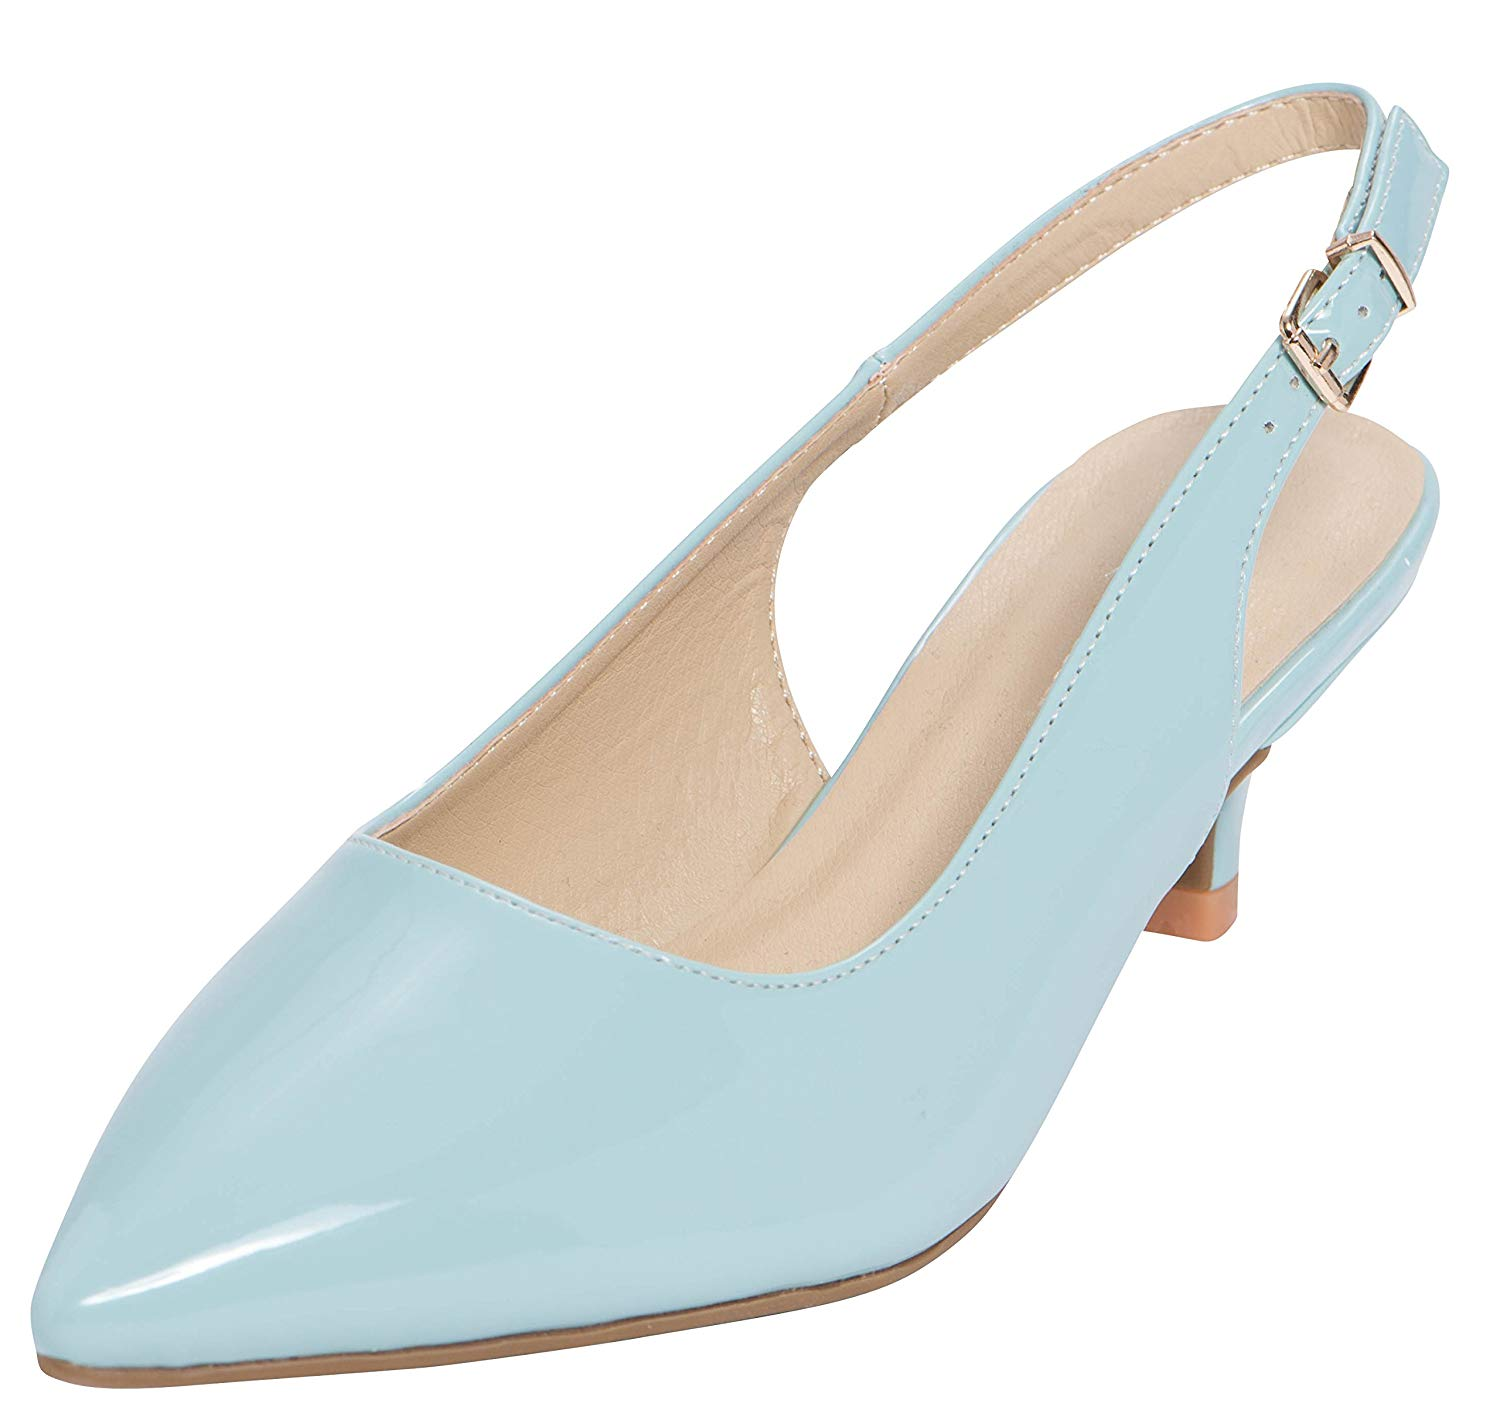 df5a5d01180 Get Quotations · Cambridge Select Women s Pointed Toe Slingback Kitten Heel  Pump